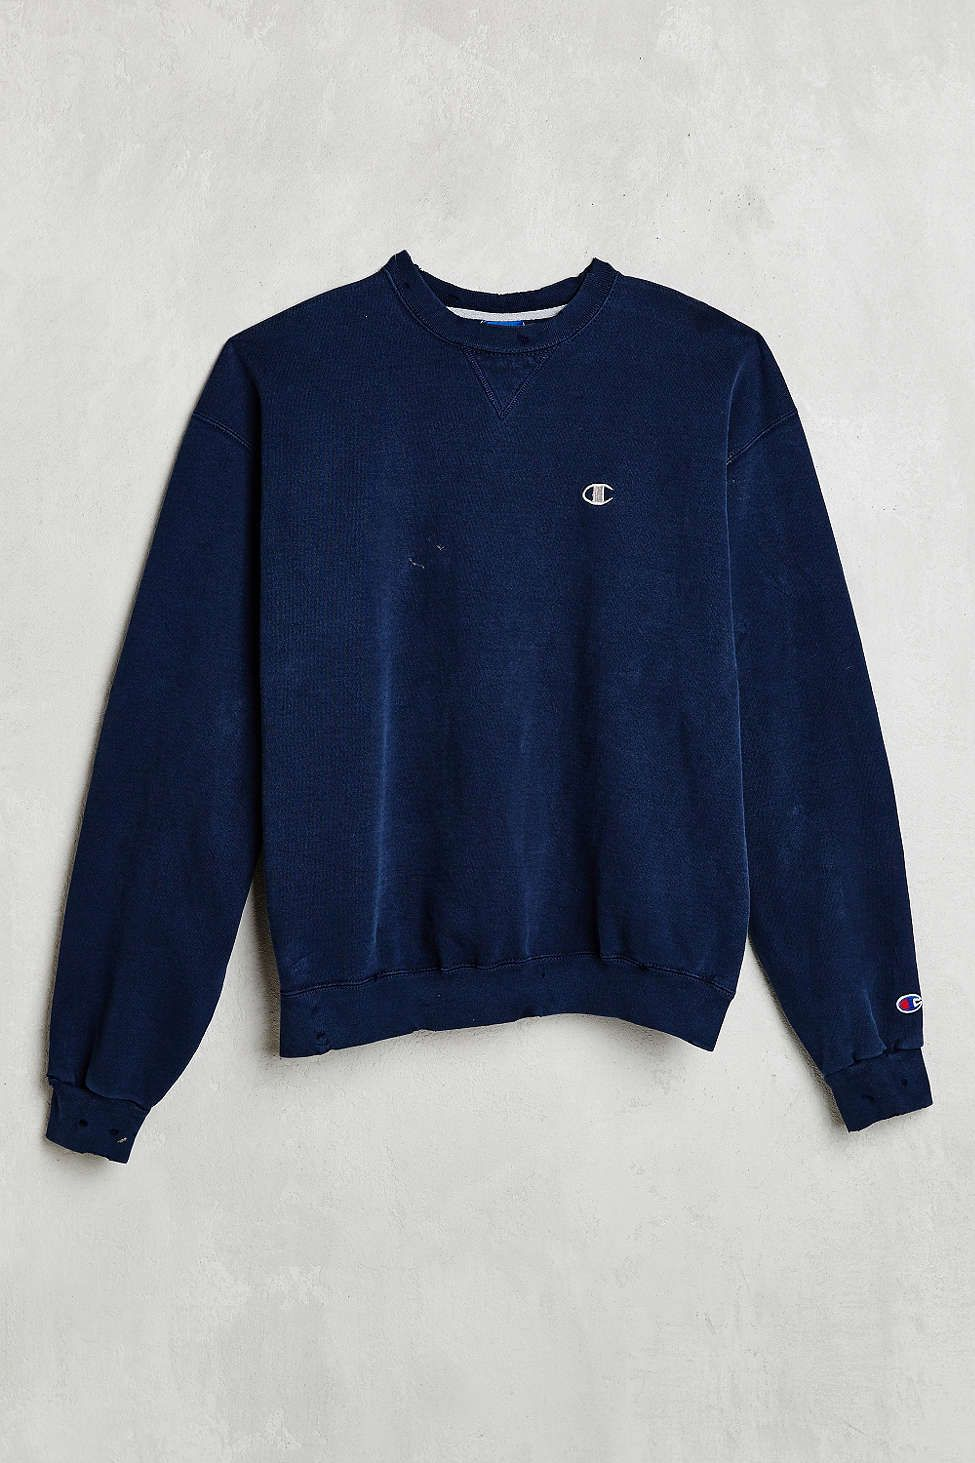 03194d065b6a Vintage Champion Blue Sweatshirt